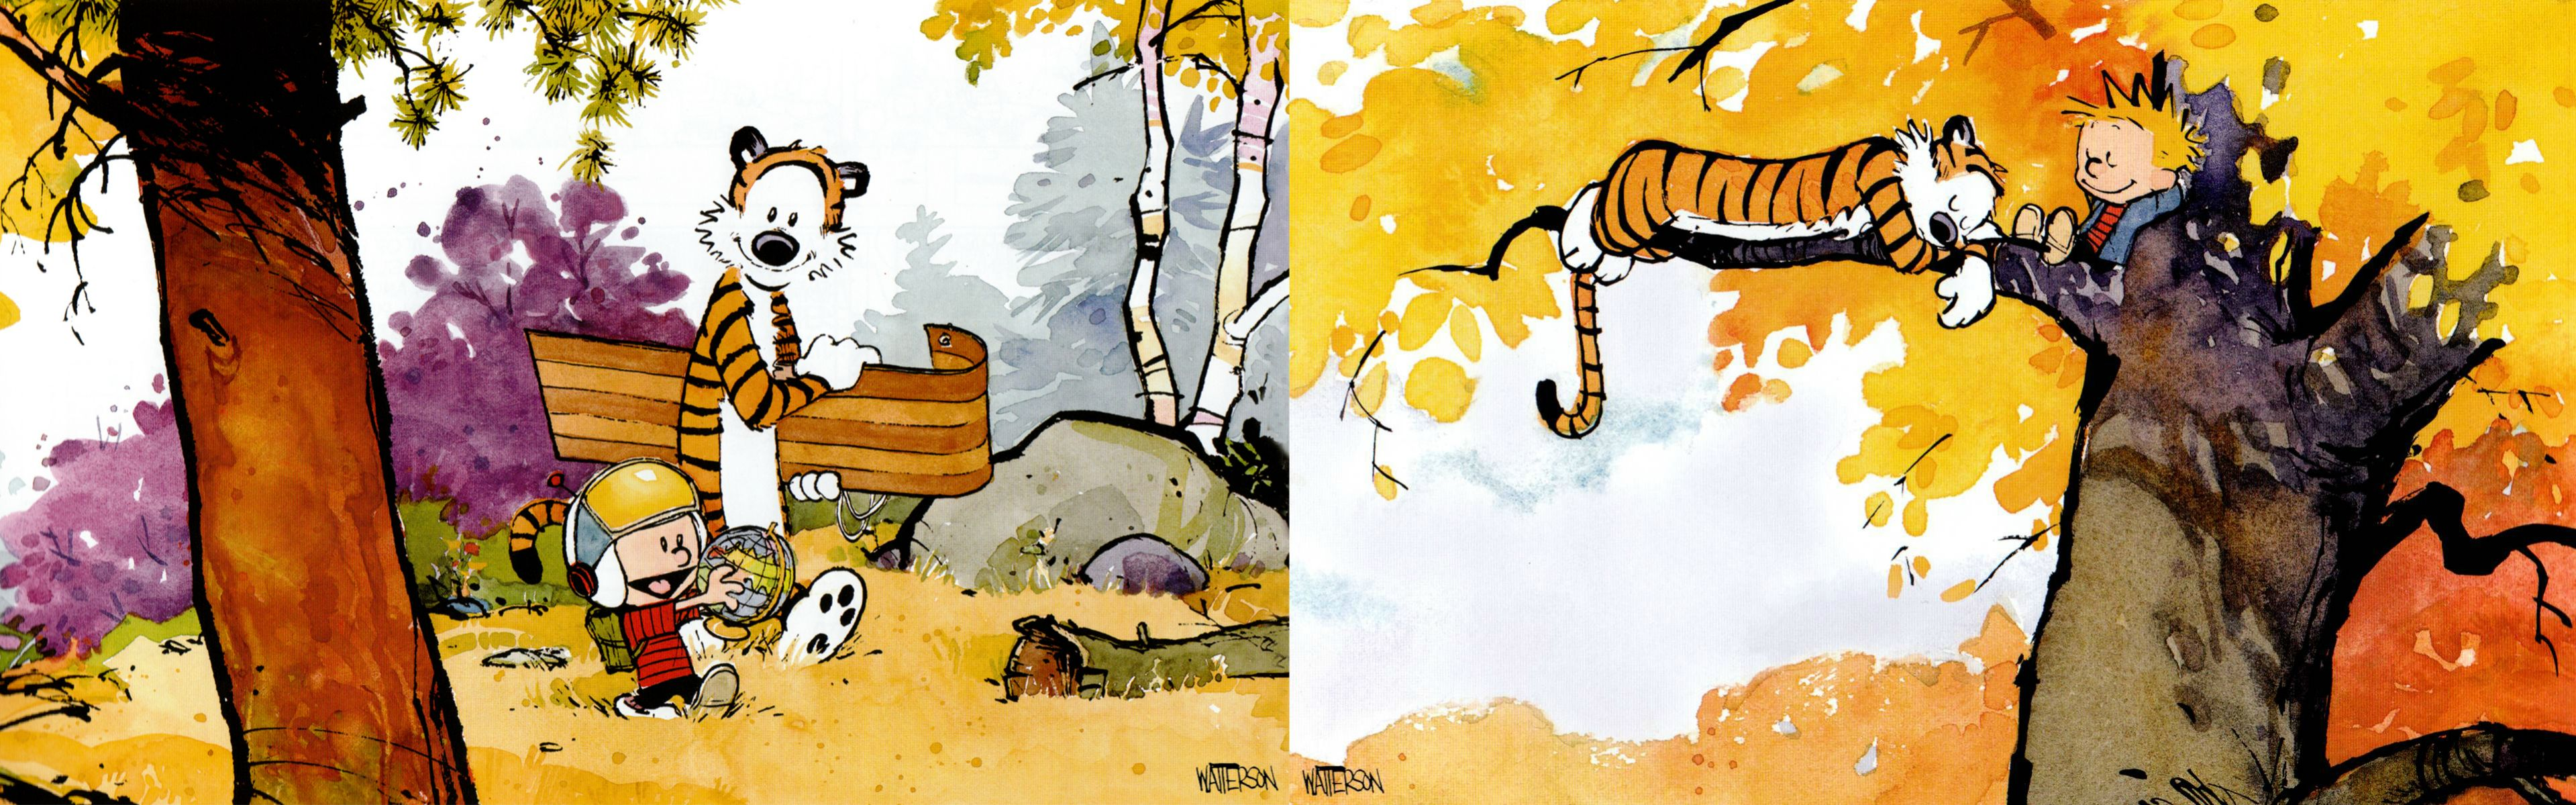 Dual Screen Wallpapers   Calvin and Hobbes   Album on Imgur 3839x1199